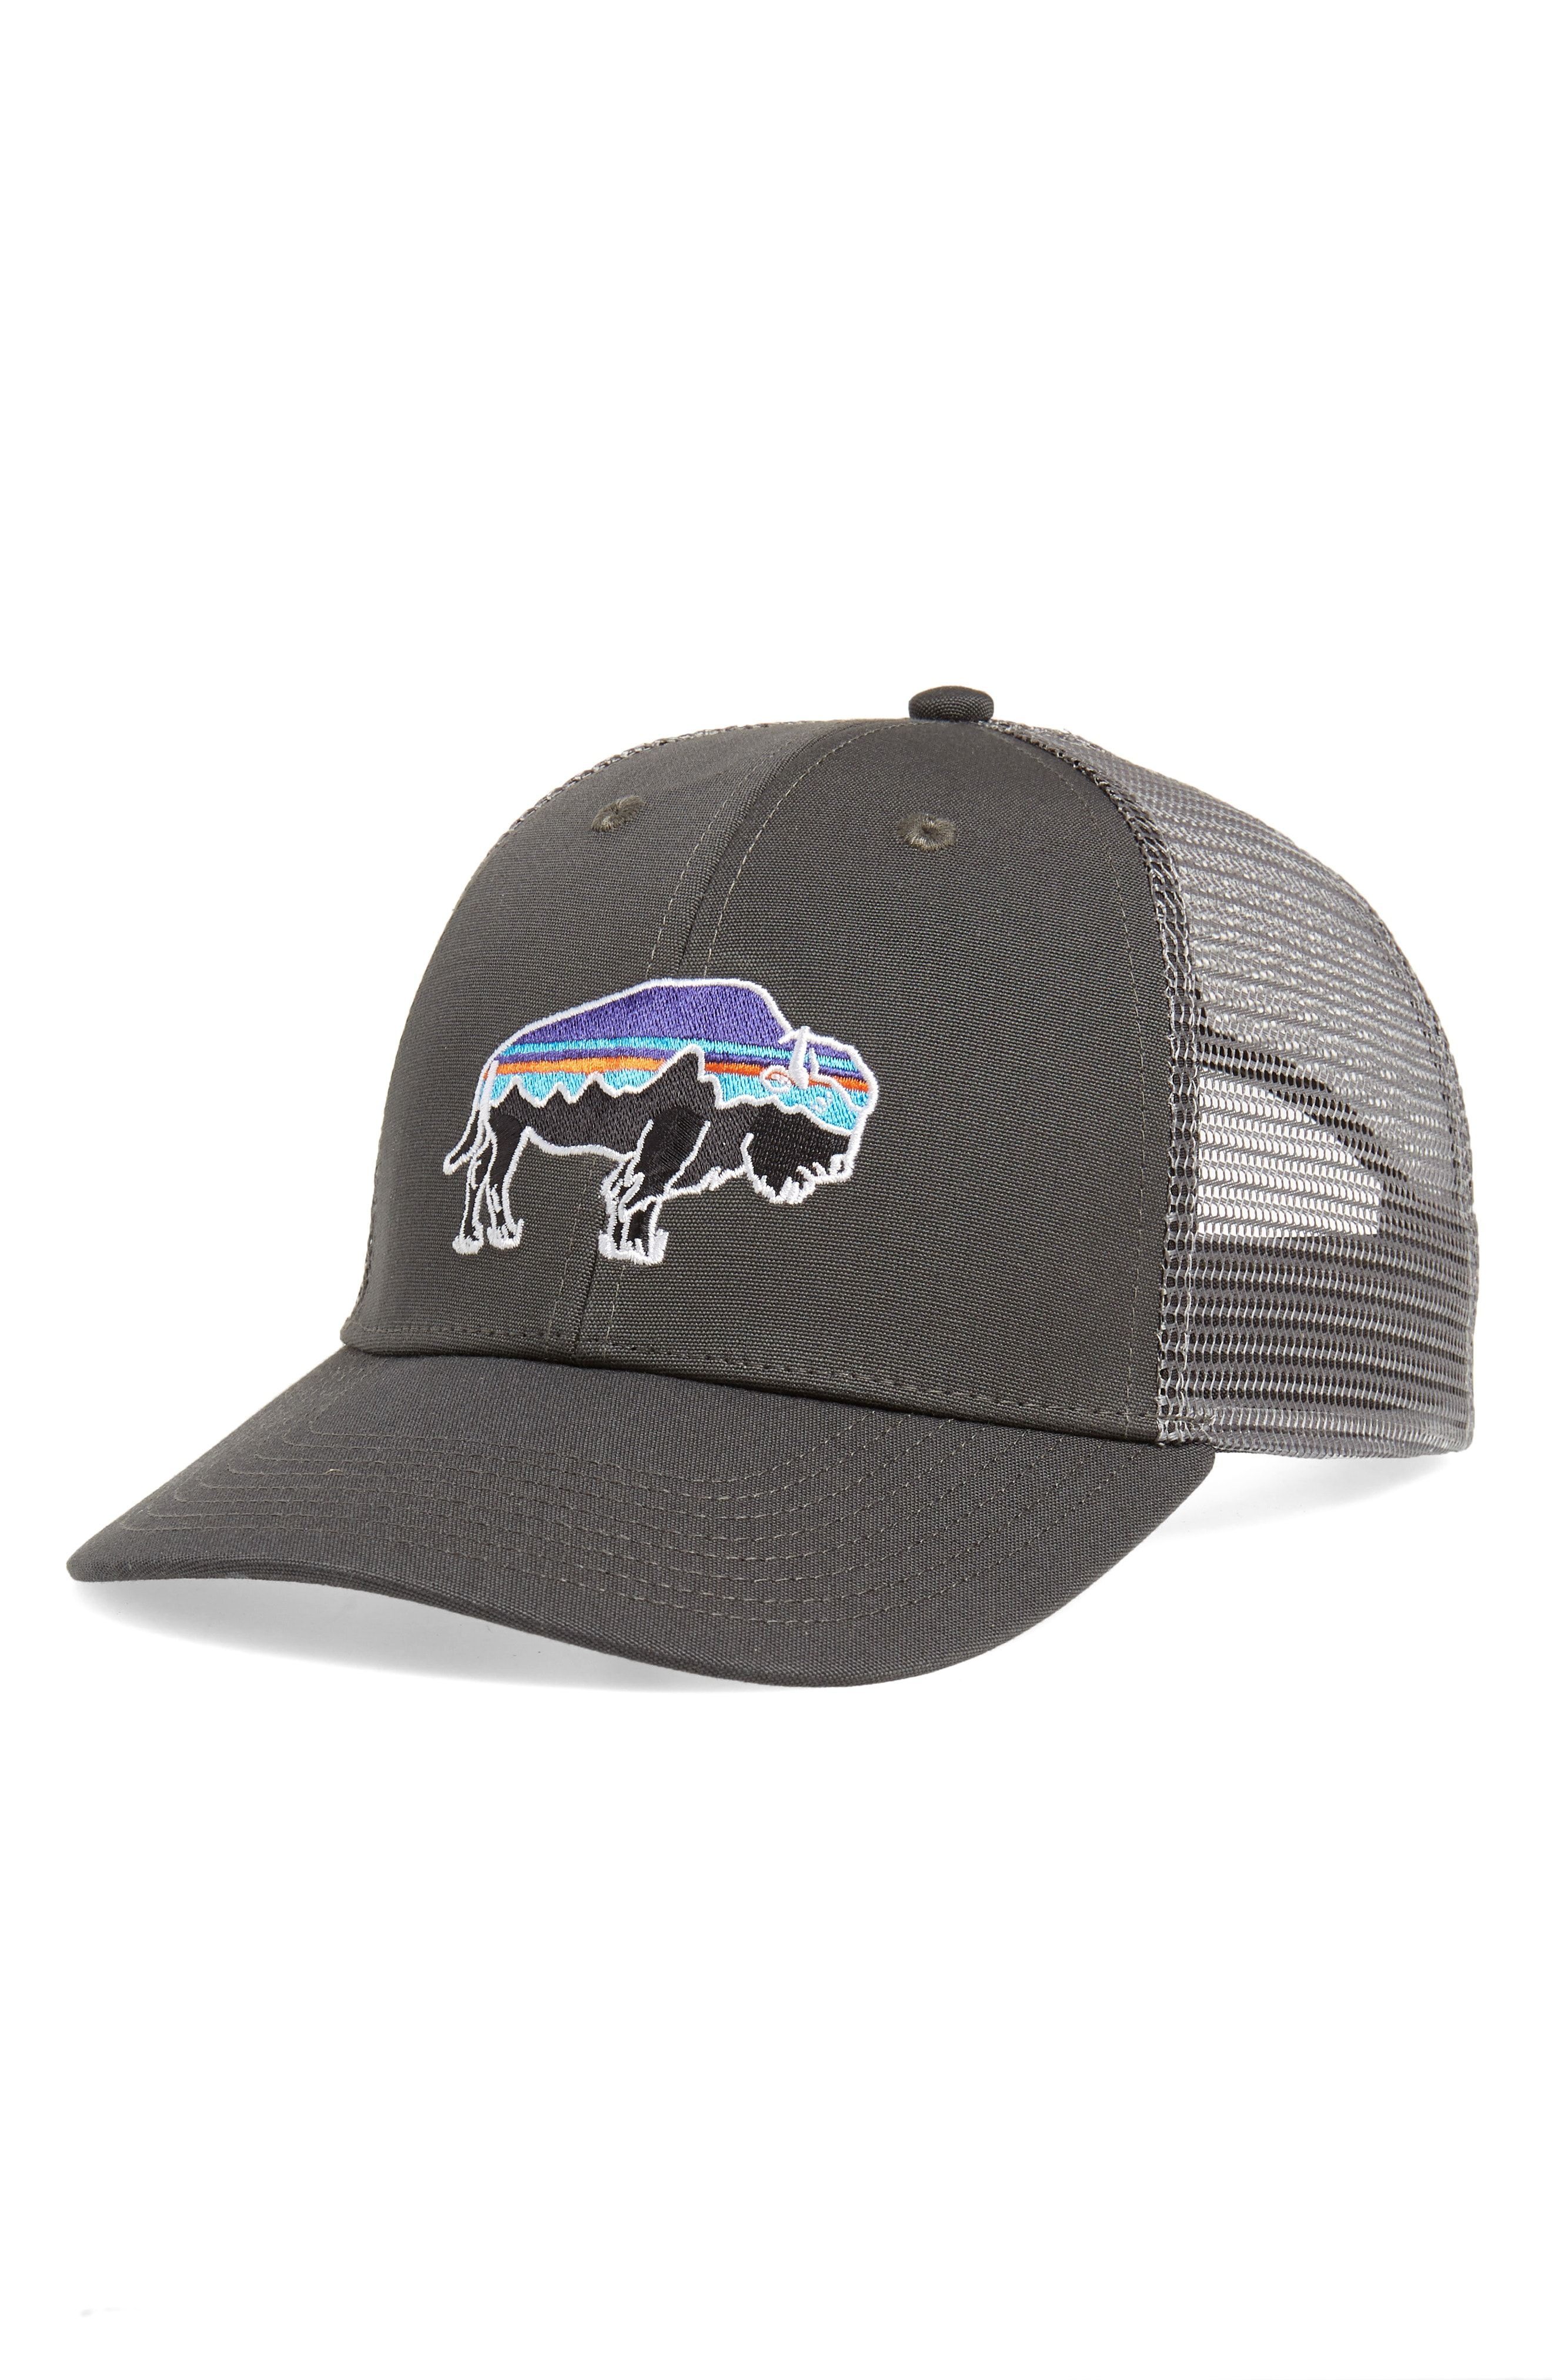 PATAGONIA  FITZ ROY - BISON  TRUCKER HAT - GREY.  patagonia ... ce61a01d07a0